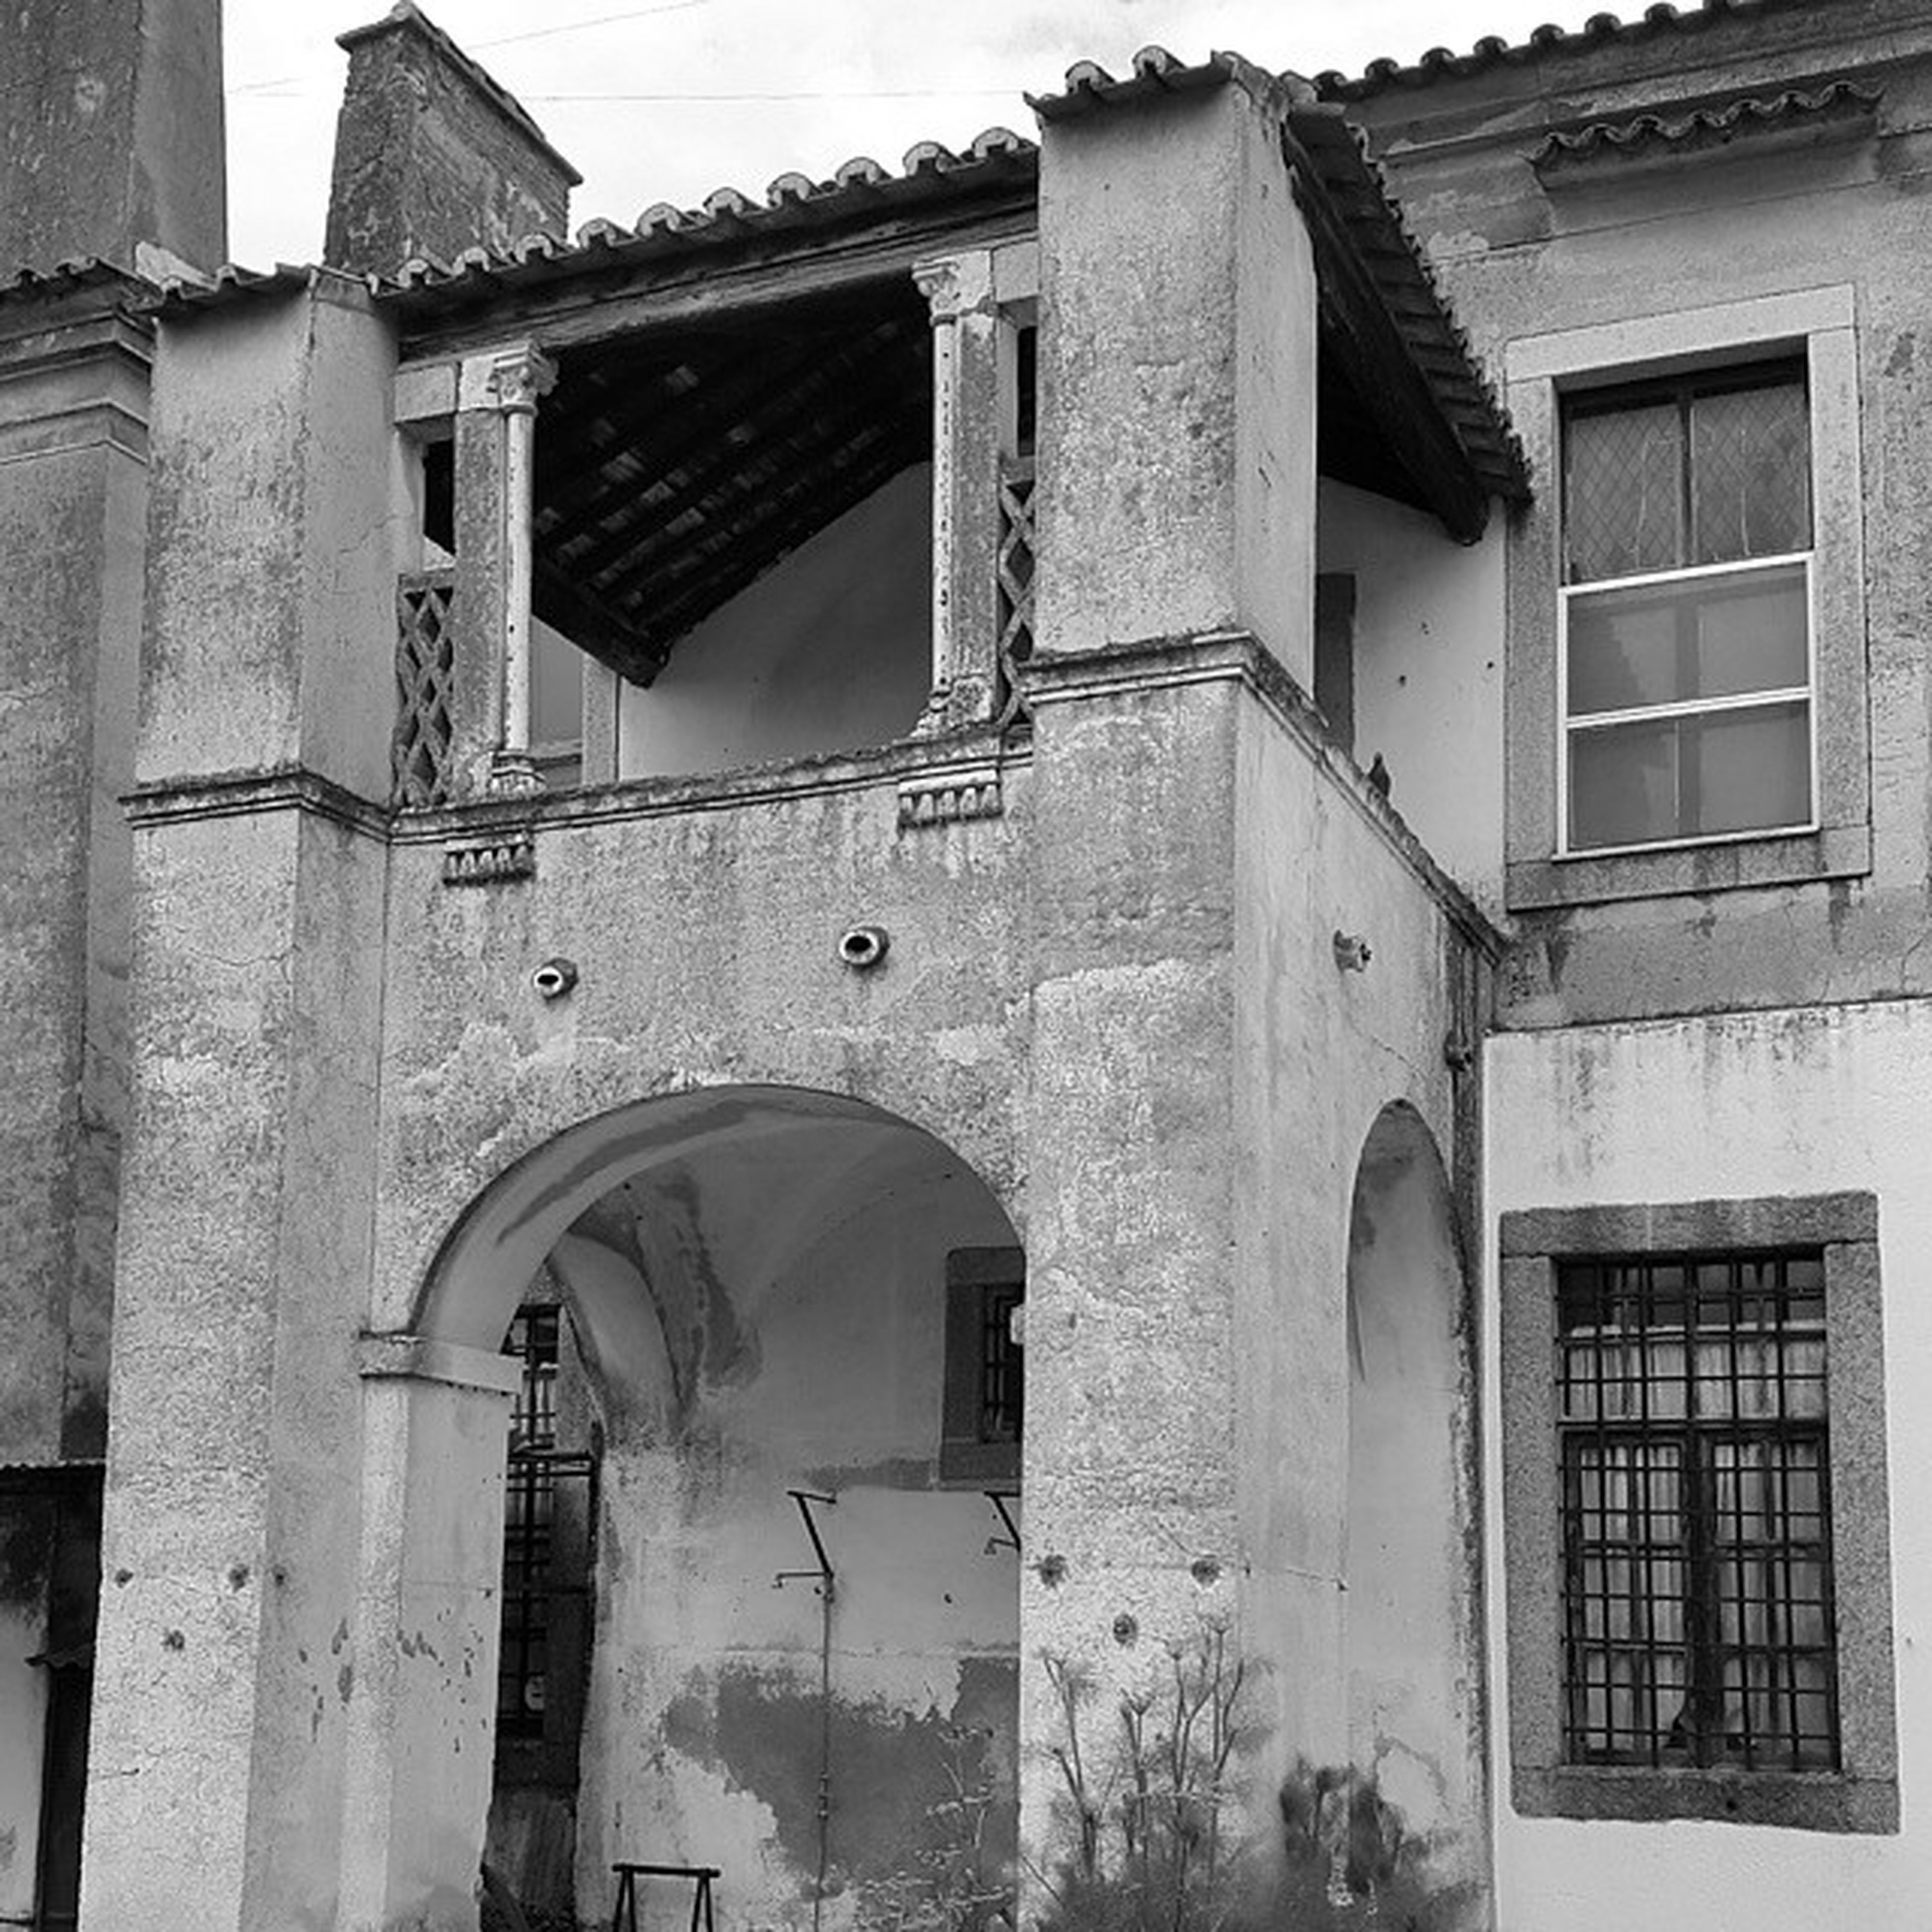 architecture, building exterior, built structure, window, house, door, low angle view, residential building, old, residential structure, building, arch, day, outdoors, weathered, no people, entrance, facade, closed, wall